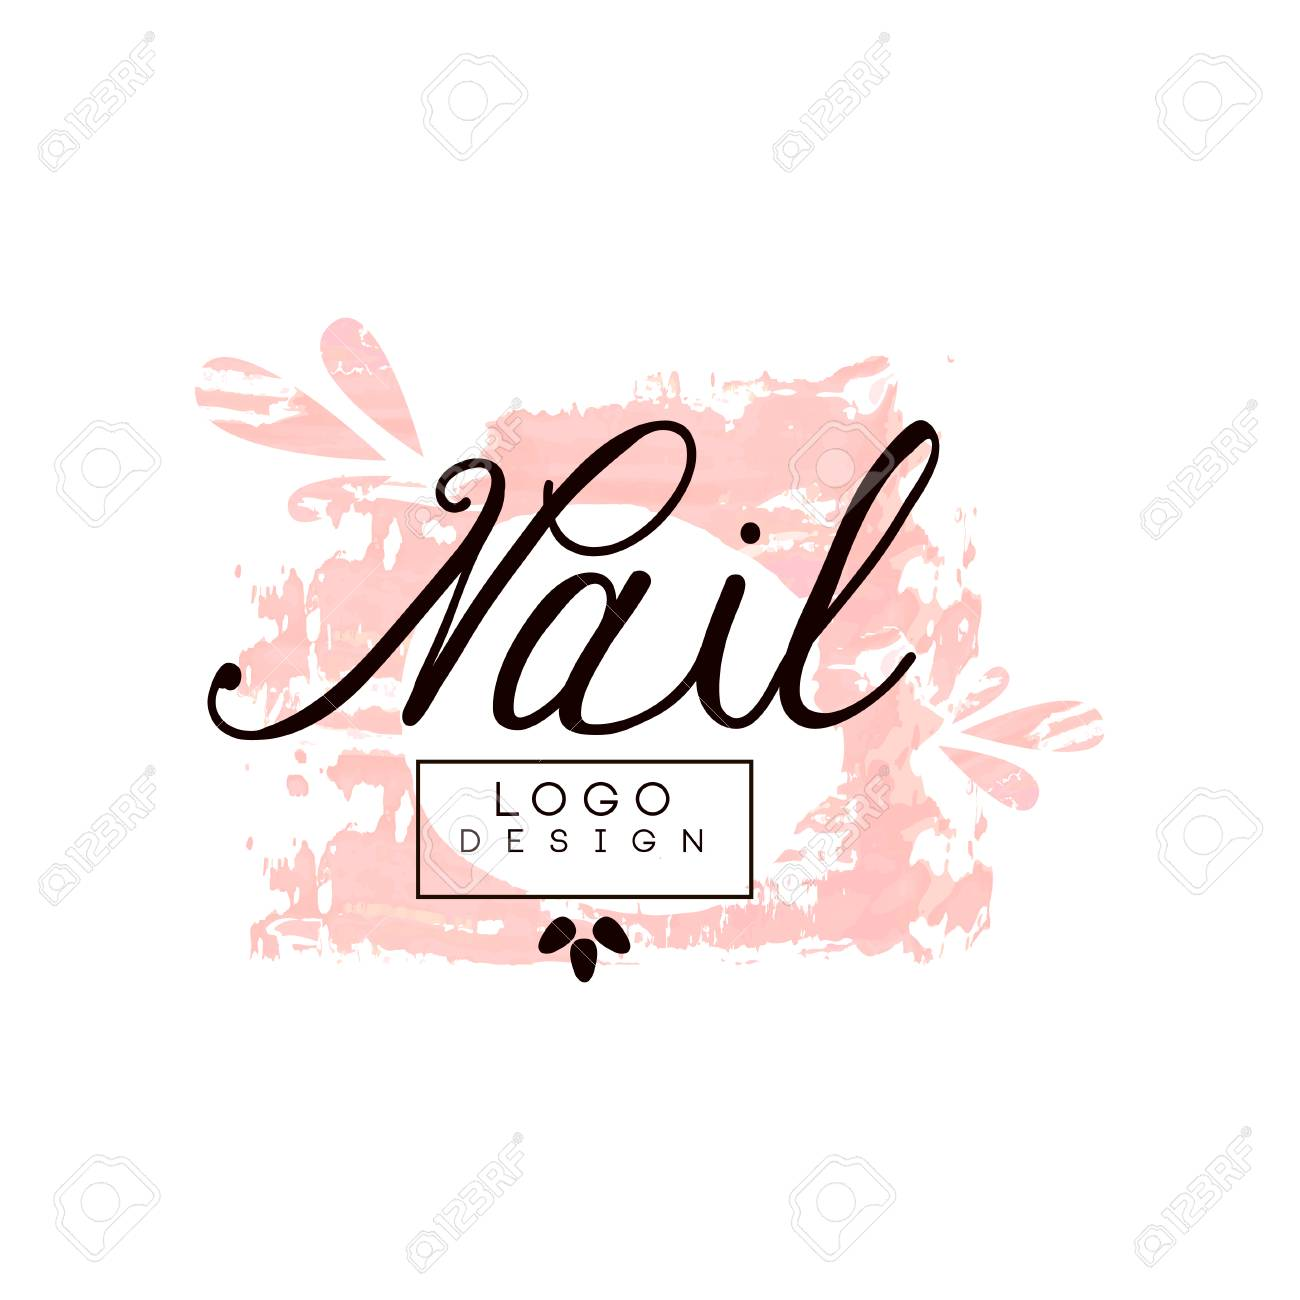 Nail Design Template For Nail Bar Manicure Saloon Manicurist